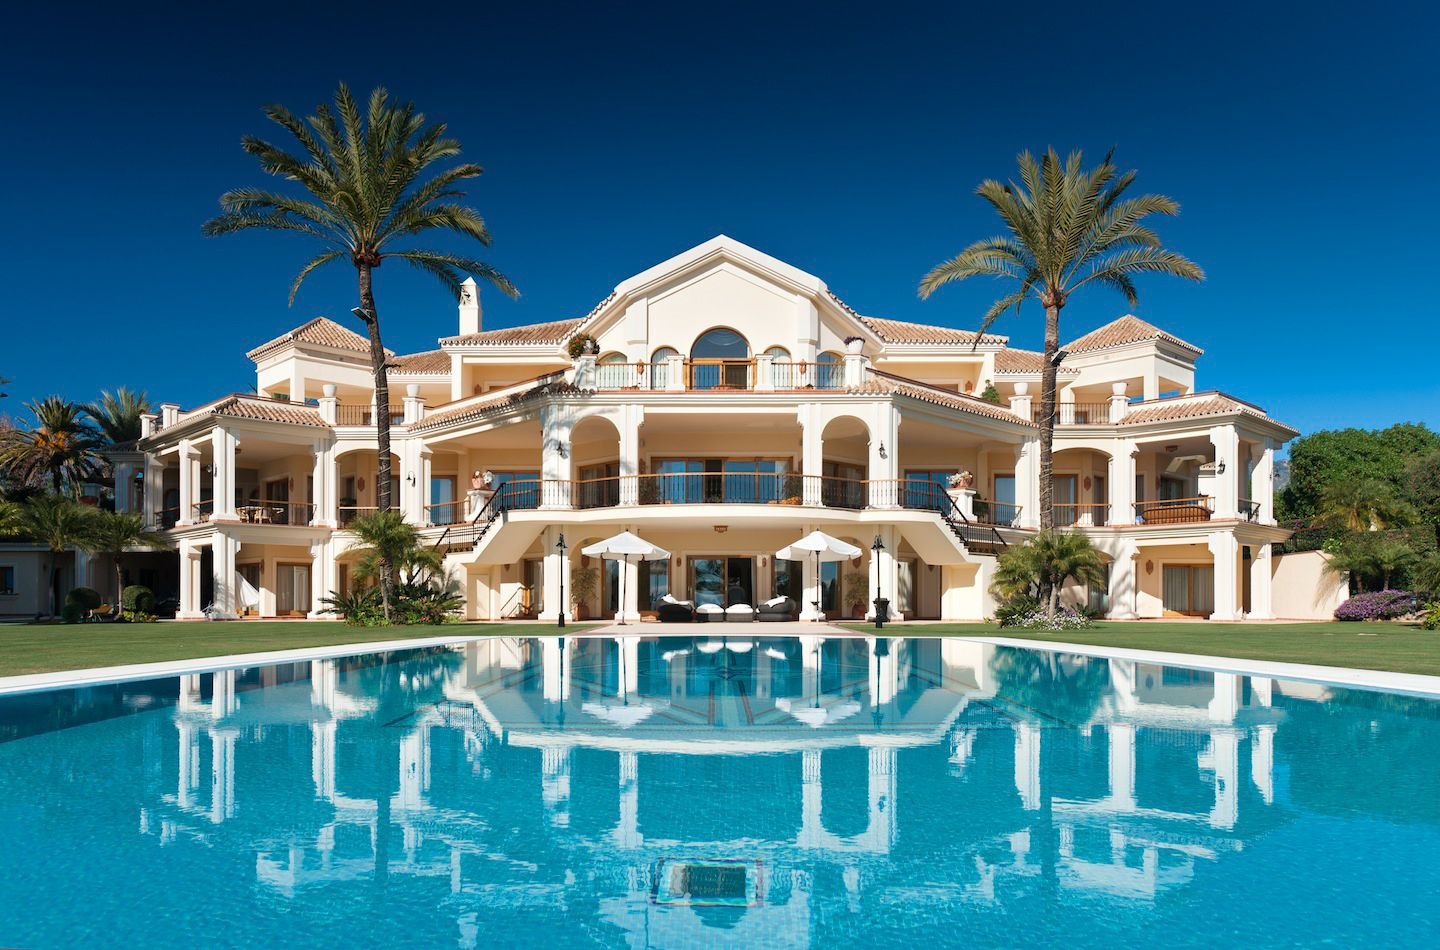 Cilo marbella luxury villas for rent and sale - Luxury homes marbella ...